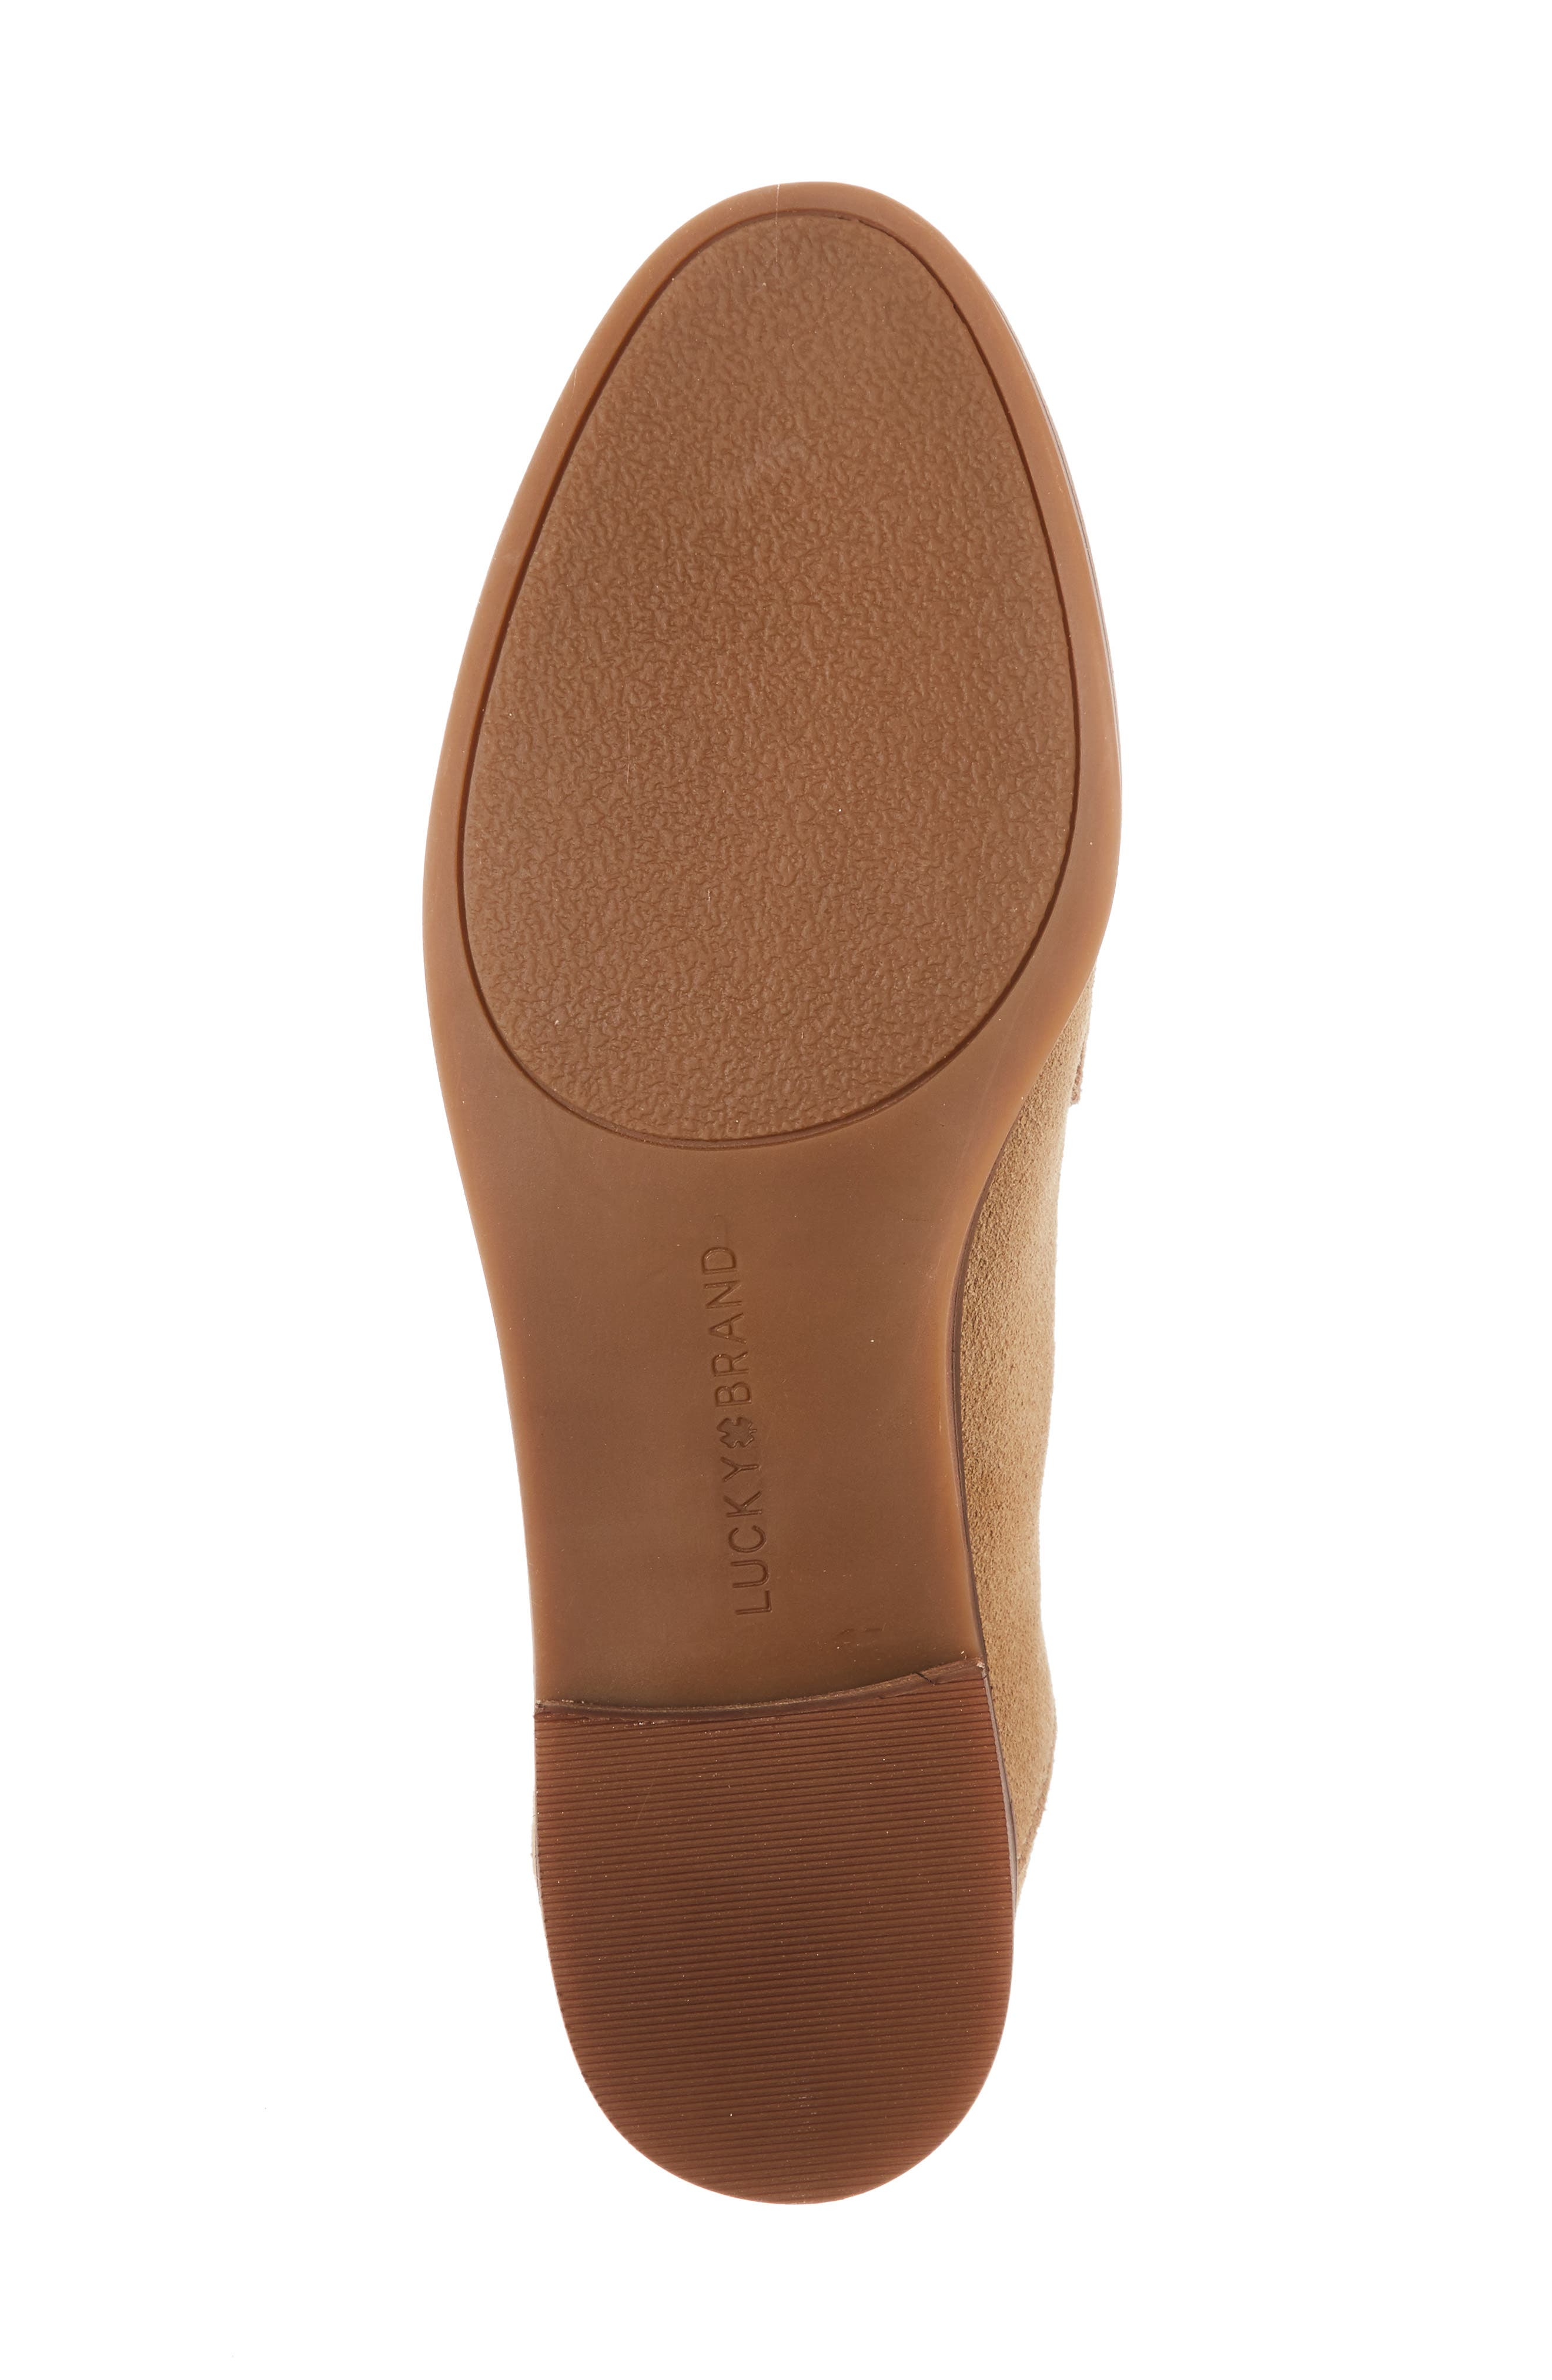 Chennie Loafer,                             Alternate thumbnail 6, color,                             Travertine Suede